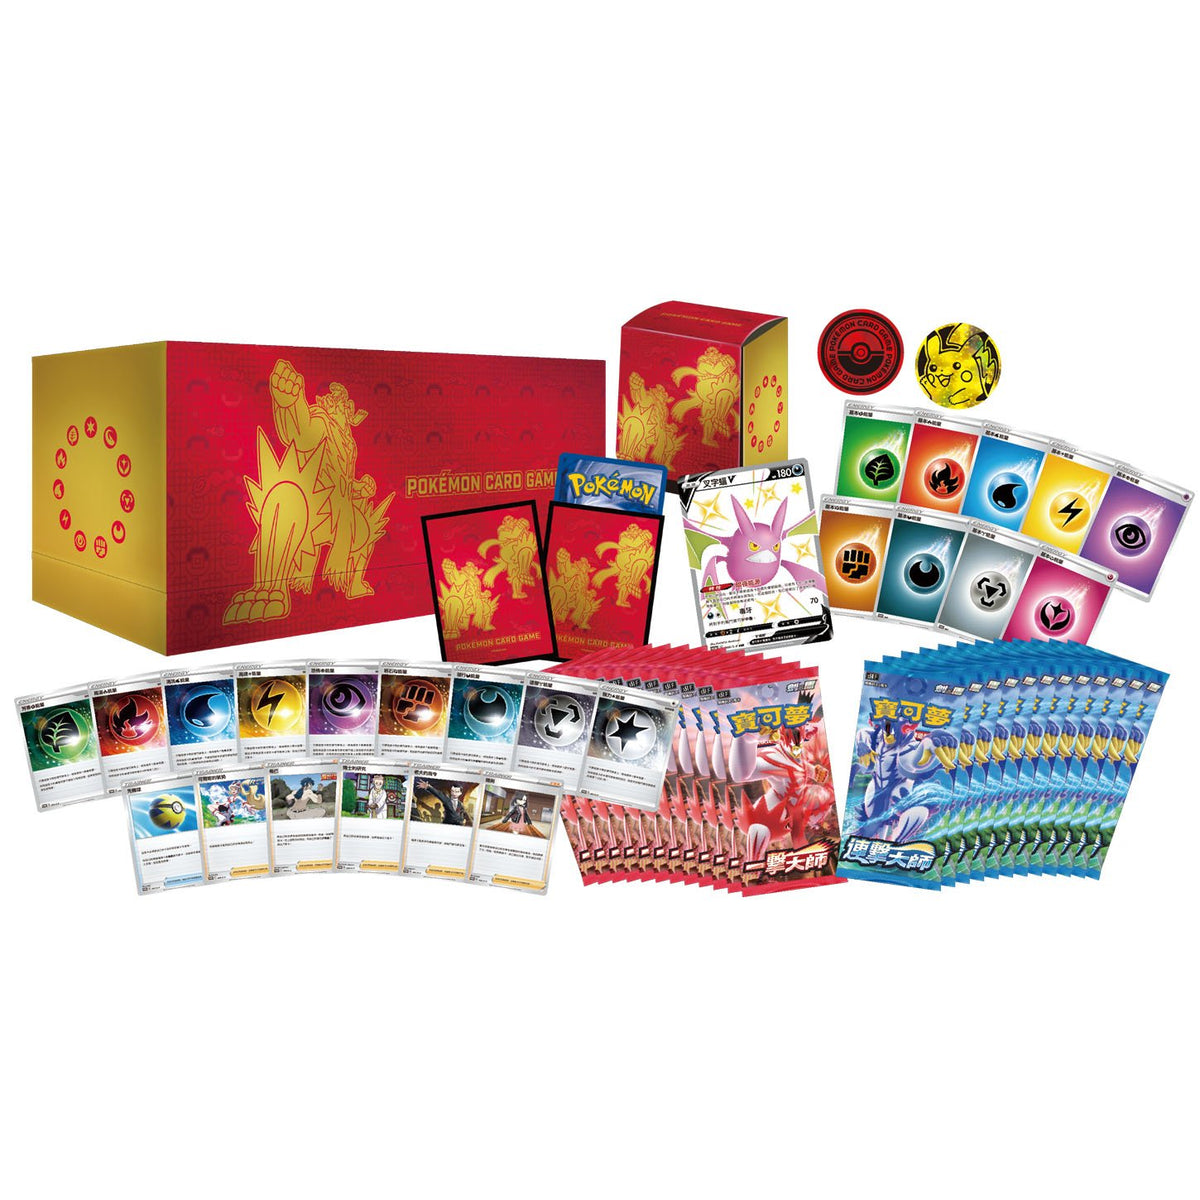 Pokemon TCG 寶可夢 擴充包 劍&盾 頂級強化箱 (Chinese)-Package Bundle (頂級強化箱 x1box, 一擊大師 x 3boxes & 連擊大師 x 3boxes)-The Pokémon Company International-Ace Cards & Collectibles